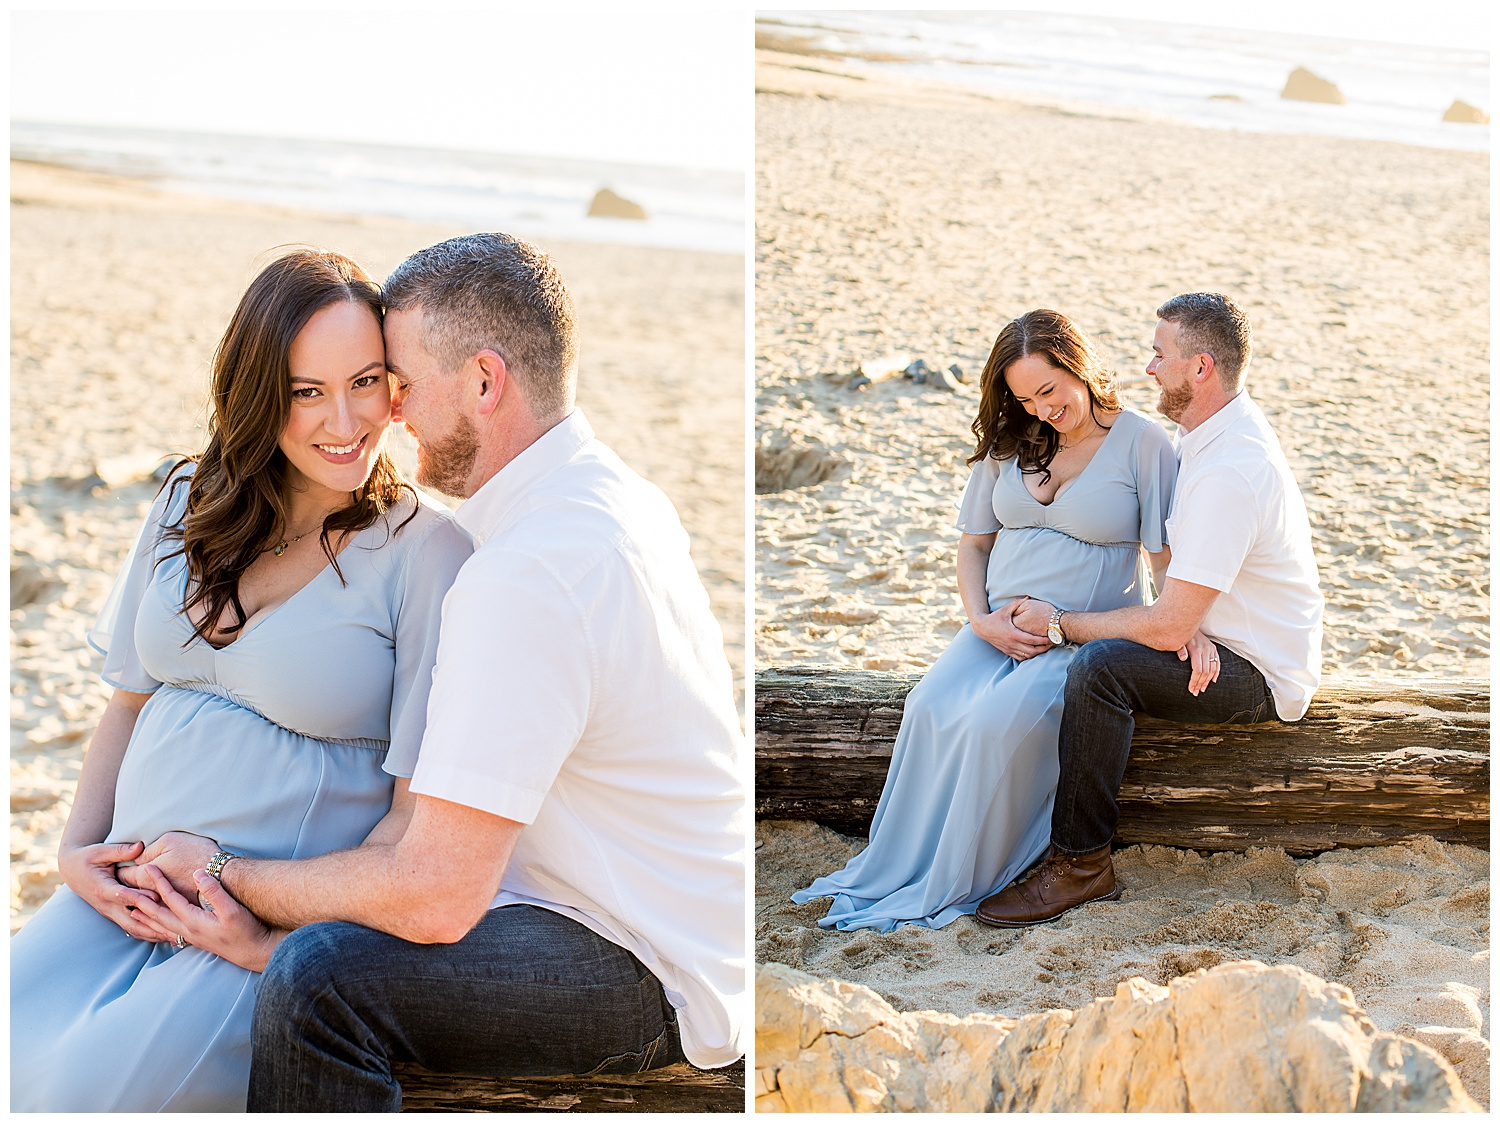 bayarea-maternity-photography-03.jpg